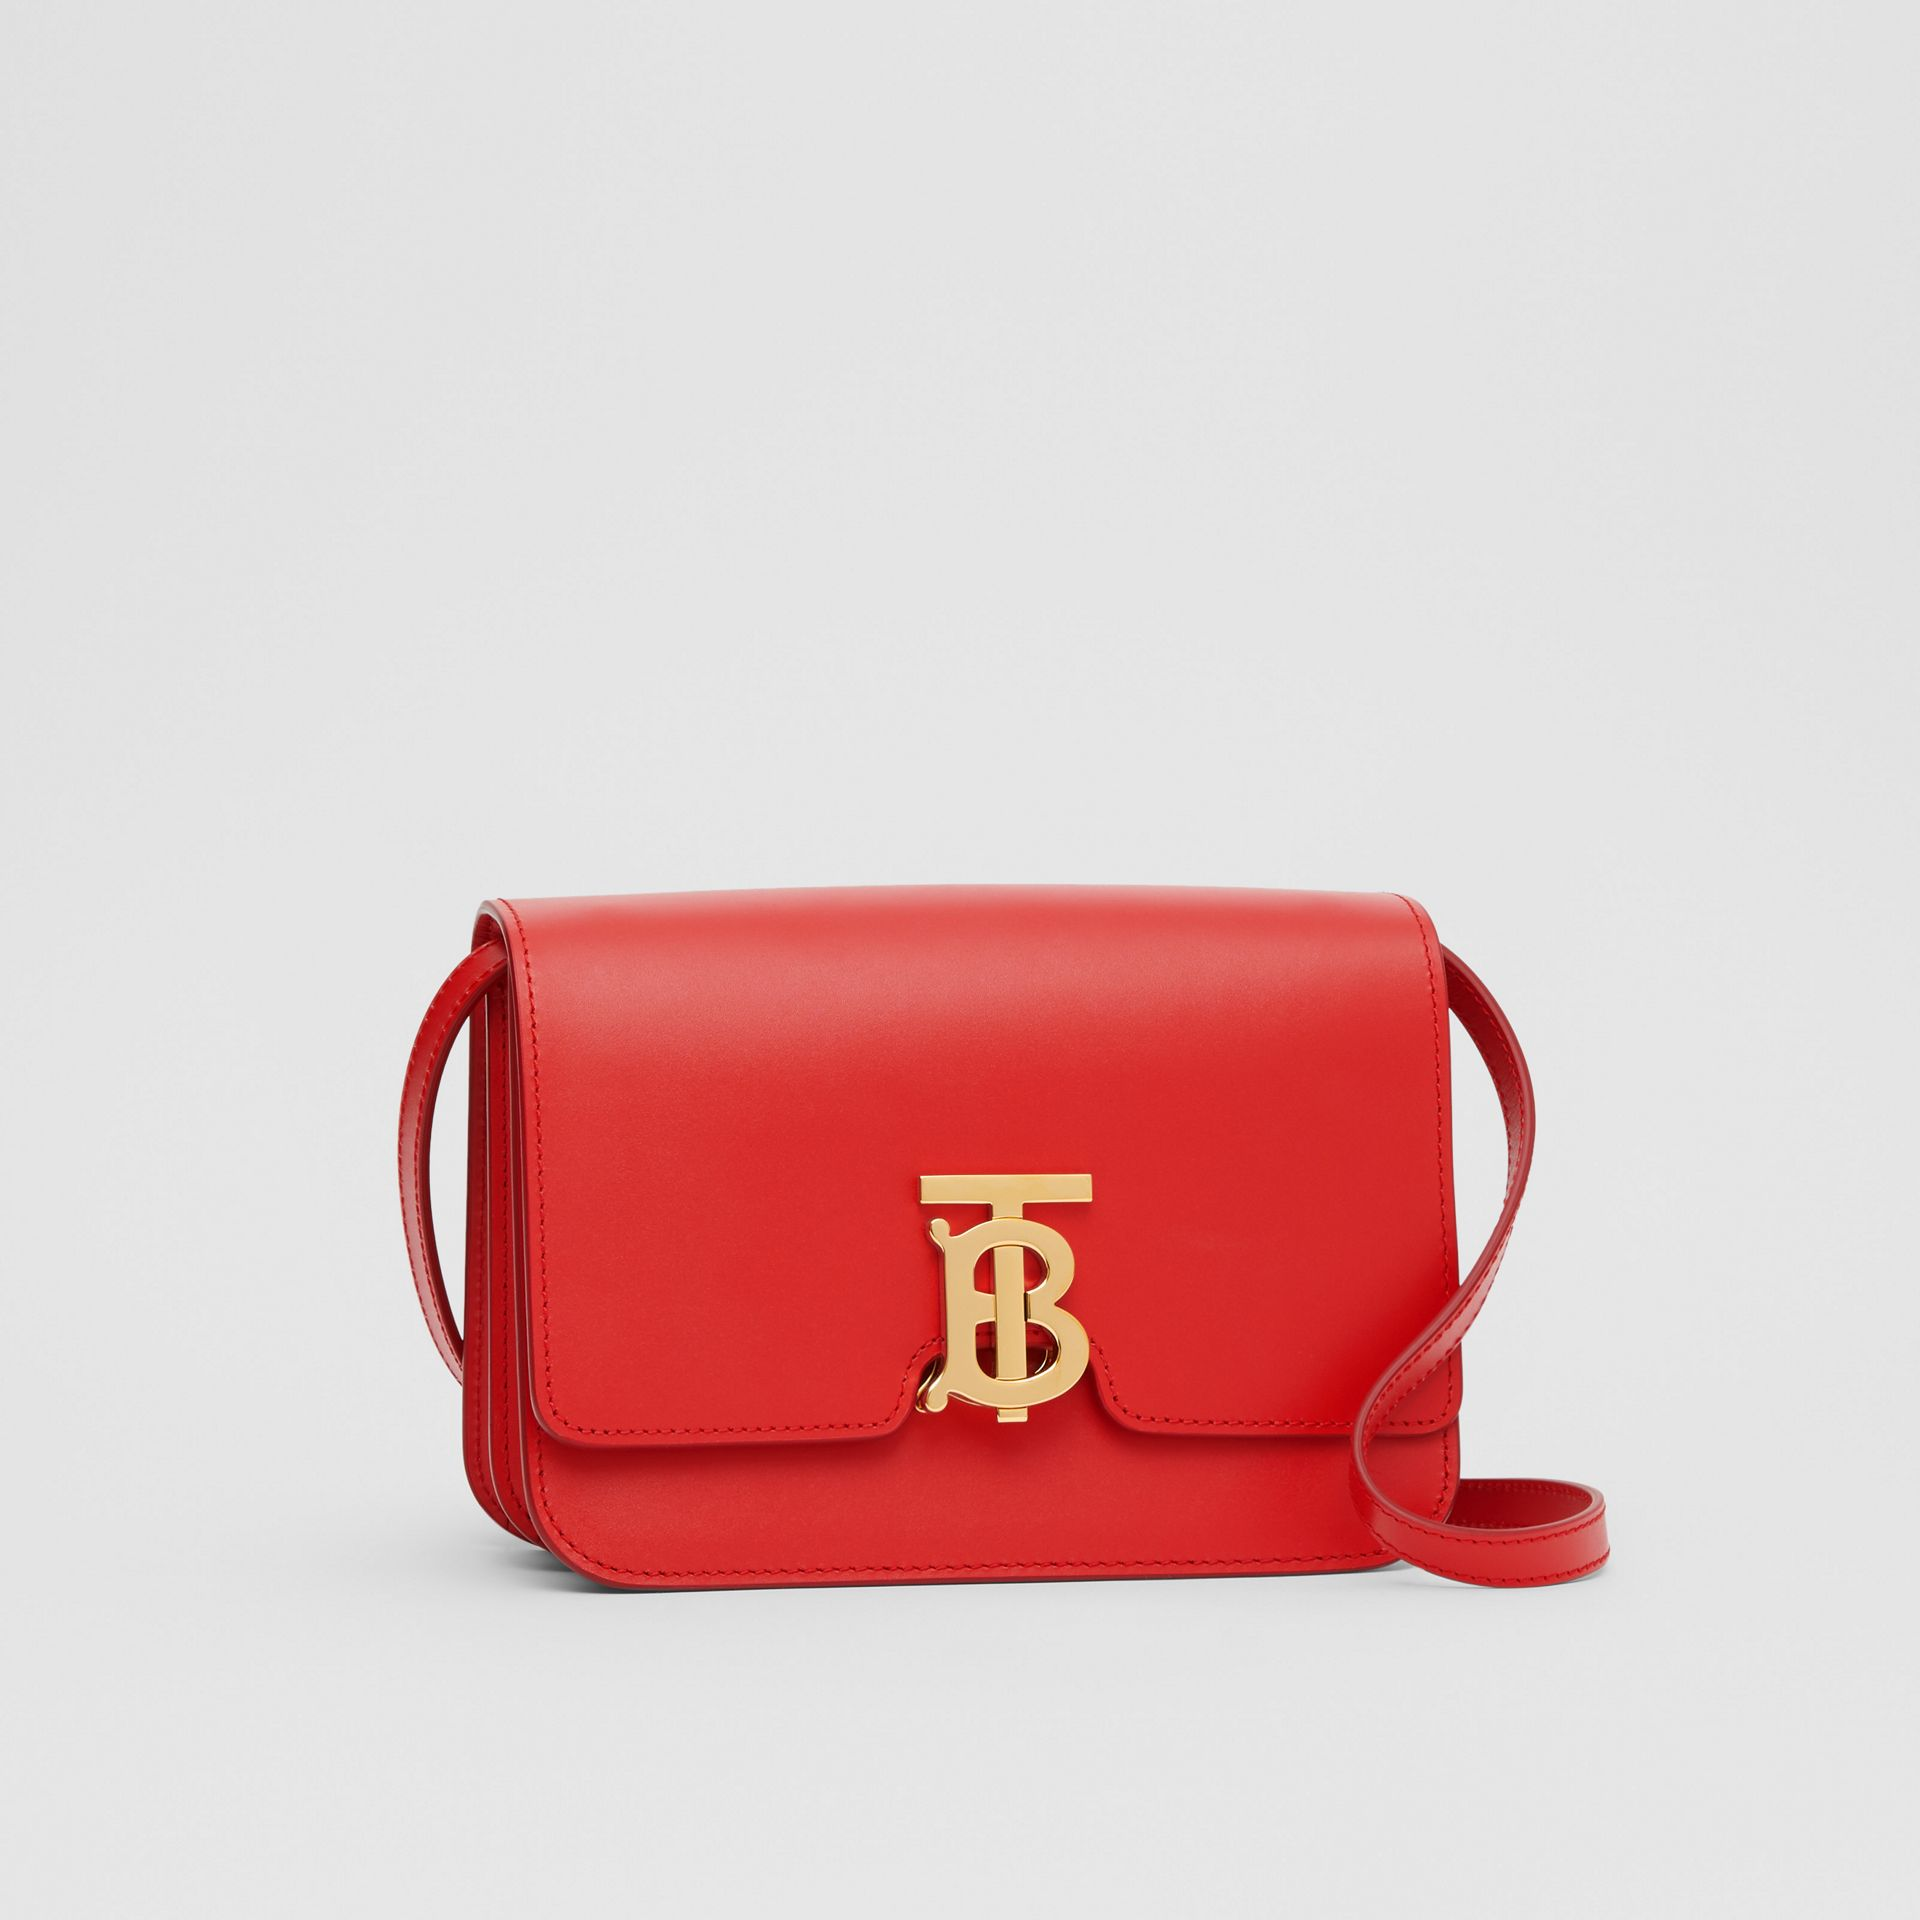 Small Leather TB Bag in Bright Red - Women | Burberry United Kingdom - gallery image 4